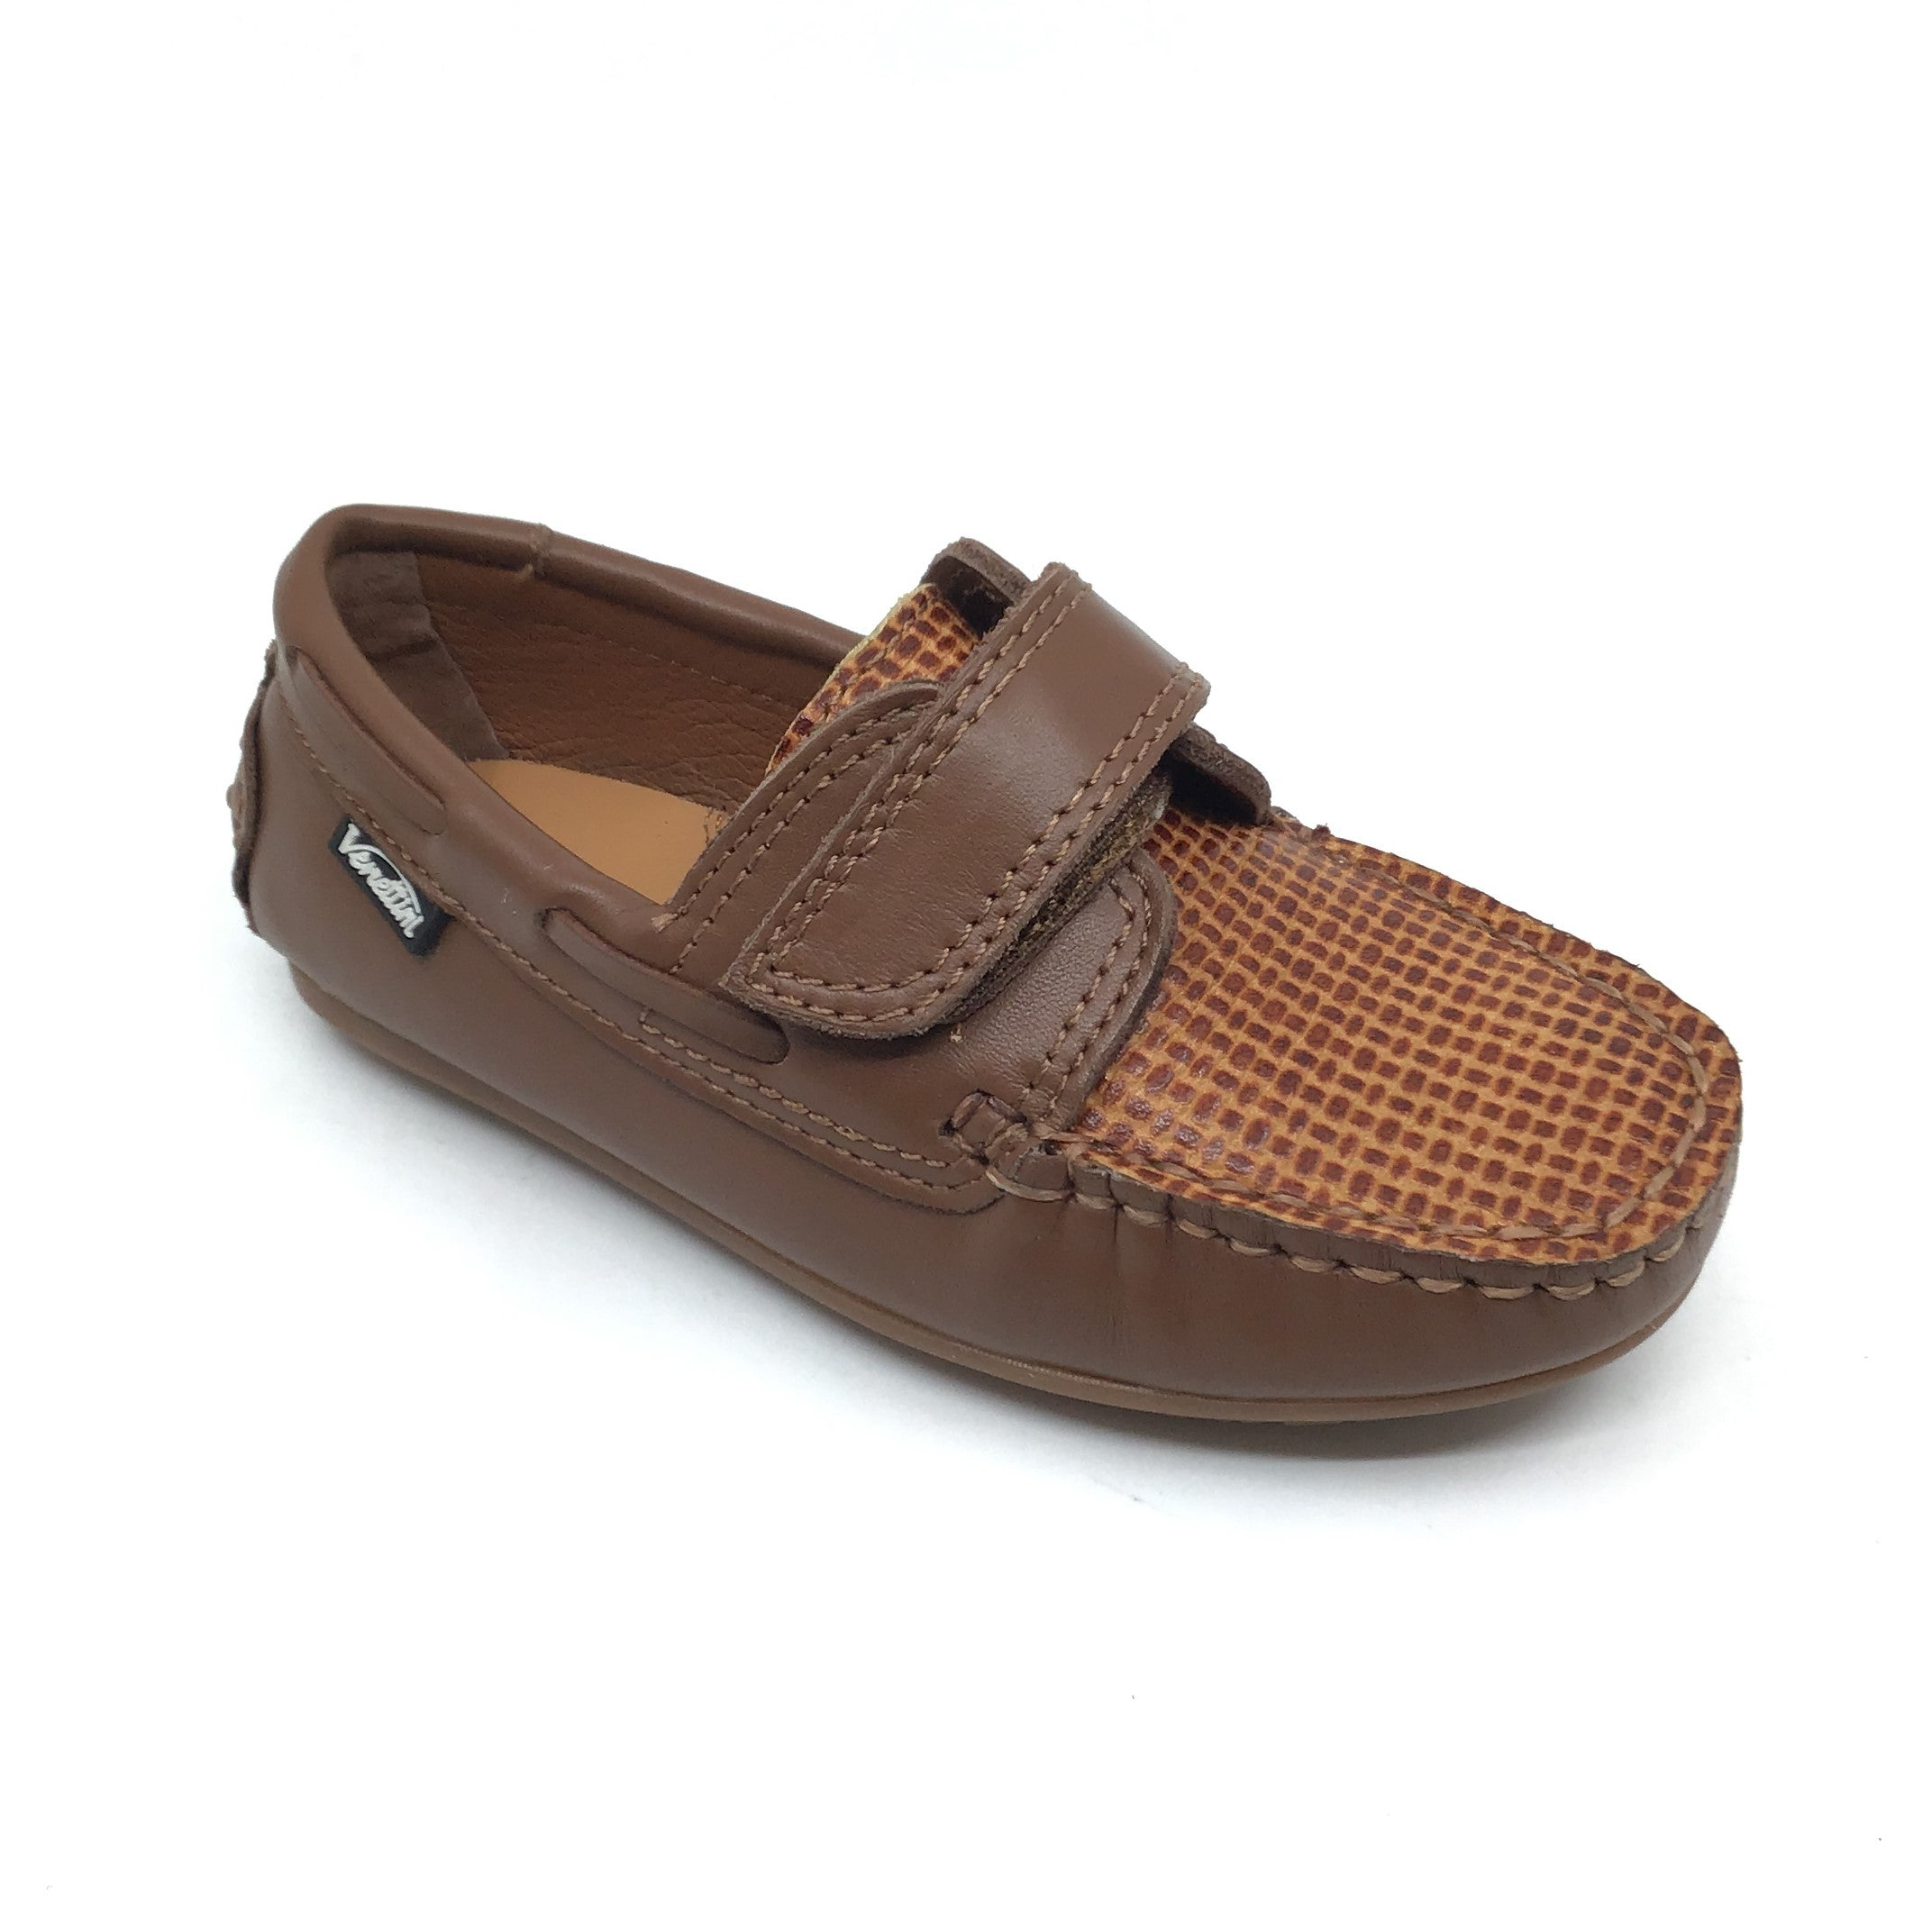 Venettini Brown Velcro Loafer with Front Texture